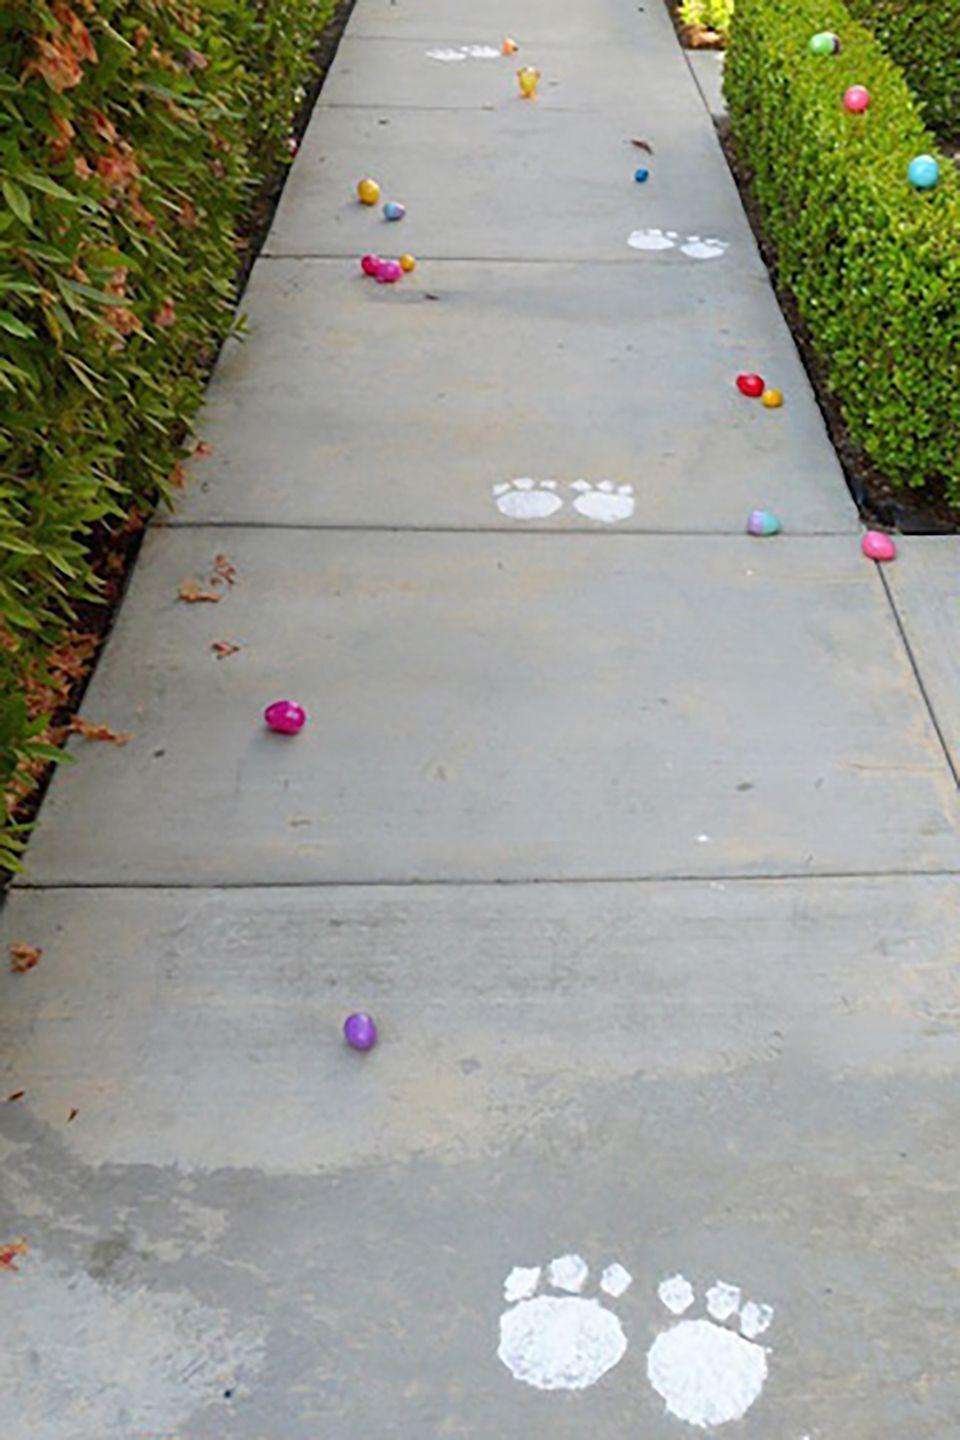 """<p>Create """"bunny tracks"""" around where you're hiding the eggs. Toddlers will be thrilled to see the Easter Bunny's paw prints!</p><p><strong>Get the tutorial at <a href=""""http://www.smartschoolhouse.com/diy-crafts/easter-bunny-trail/2"""" rel=""""nofollow noopener"""" target=""""_blank"""" data-ylk=""""slk:Smart Schoolhouse"""" class=""""link rapid-noclick-resp"""">Smart Schoolhouse</a>. </strong></p><p><strong><a class=""""link rapid-noclick-resp"""" href=""""https://www.amazon.com/Crayola-Non-Toxic-White-Colored-Bundle/dp/B0042Y450Q/ref=sr_1_1?dchild=1&keywords=chalk&qid=1614113310&sr=8-1&tag=syn-yahoo-20&ascsubtag=%5Bartid%7C10050.g.4083%5Bsrc%7Cyahoo-us"""" rel=""""nofollow noopener"""" target=""""_blank"""" data-ylk=""""slk:SHOP CHALK"""">SHOP CHALK</a><br></strong></p>"""